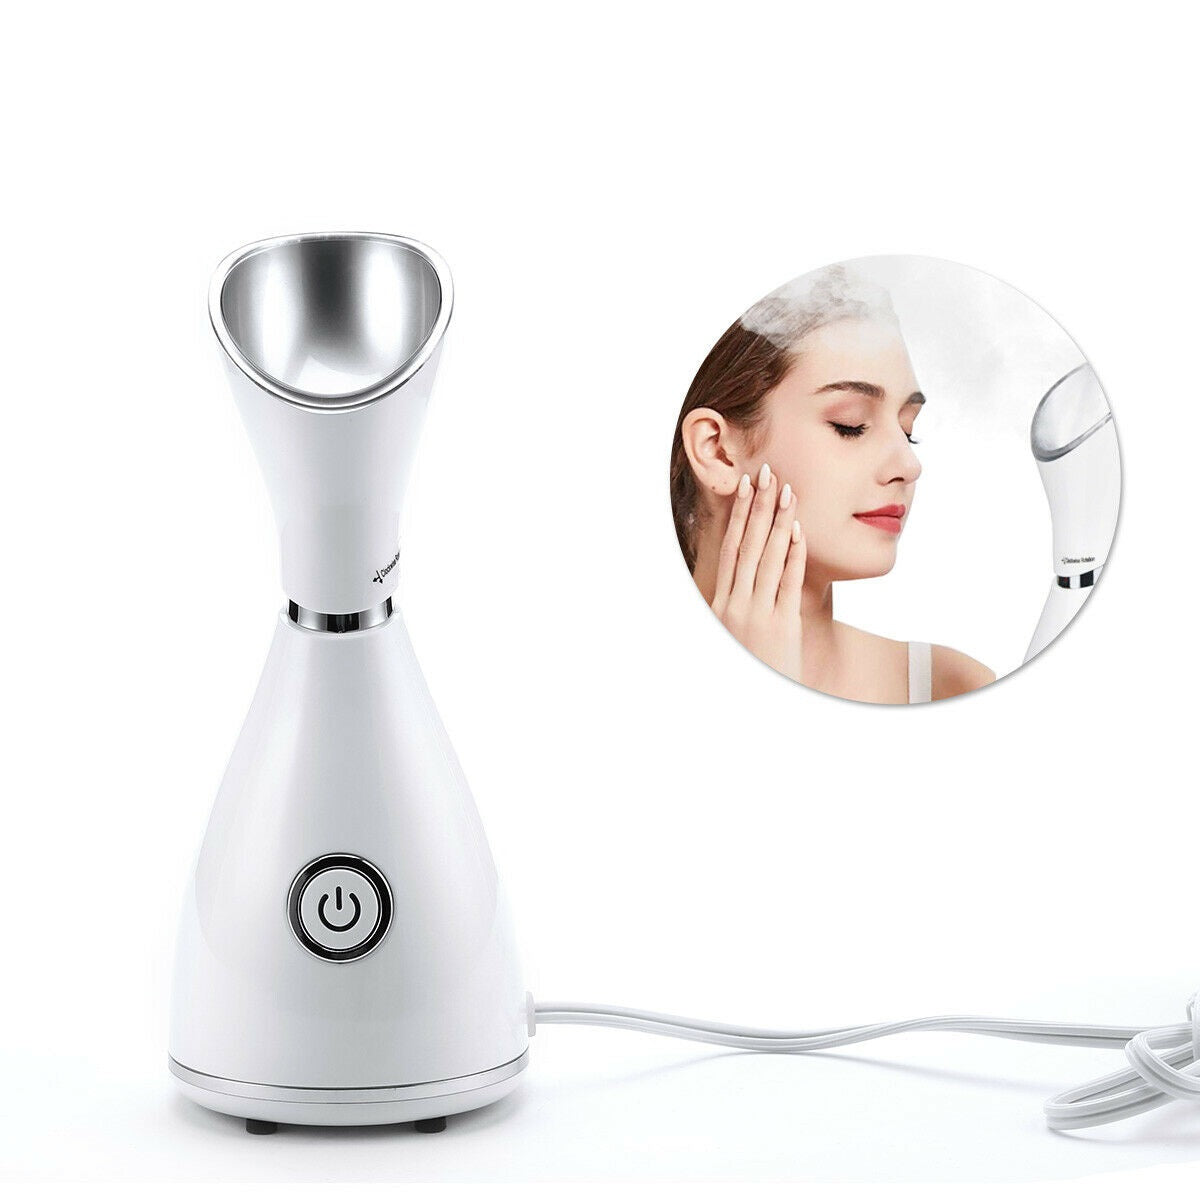 Premium Facial Steamer Nano Ionic Humidifier Warm Mist Machine - Morealis